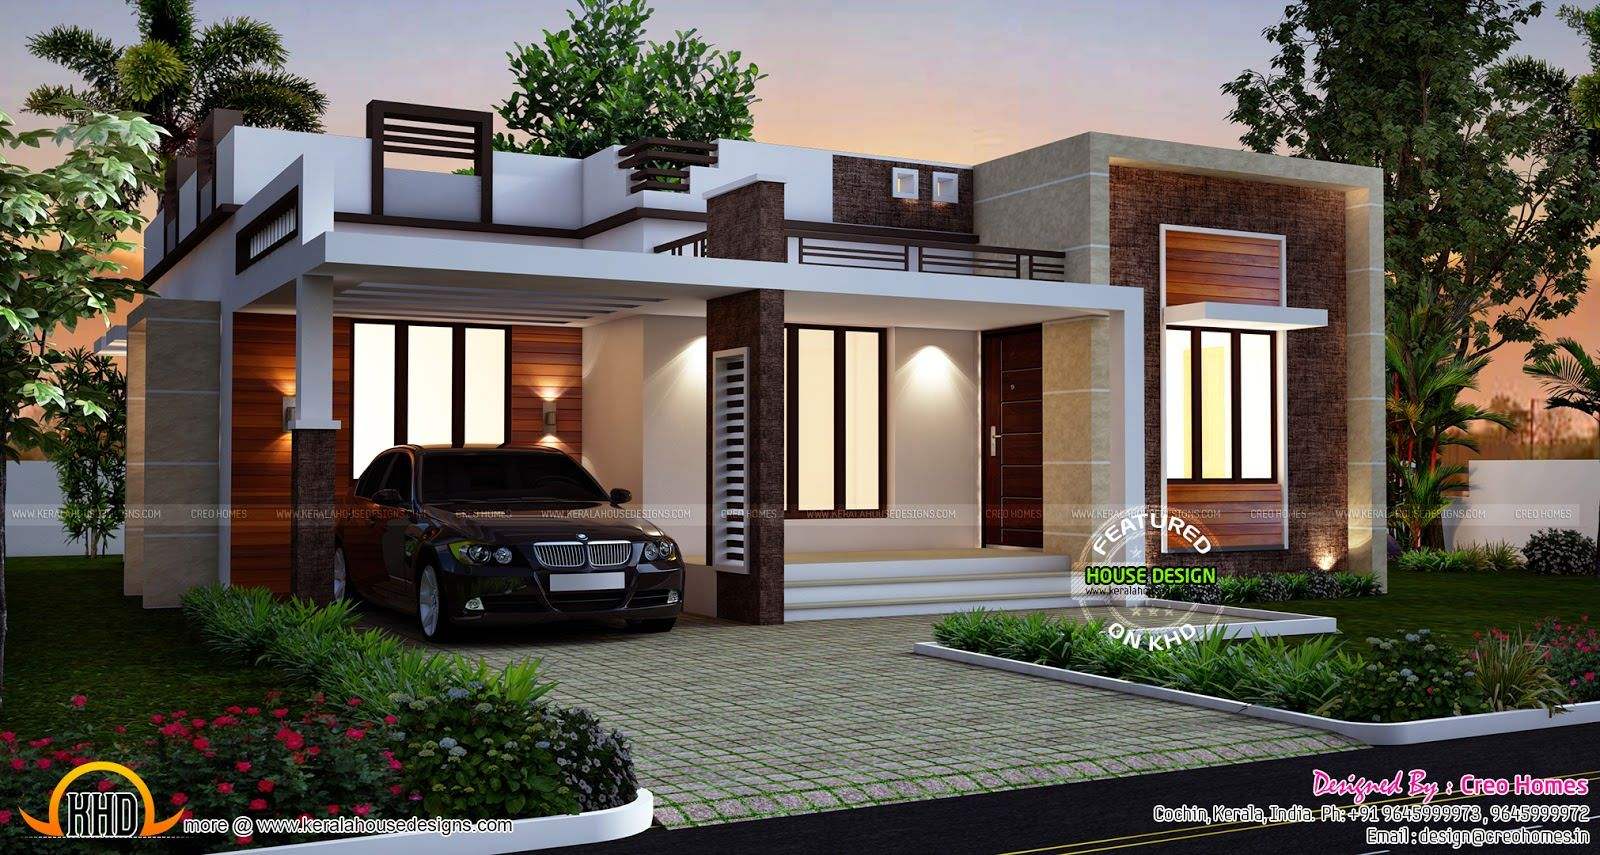 Designs homes design single story flat roof house plans Good homes design